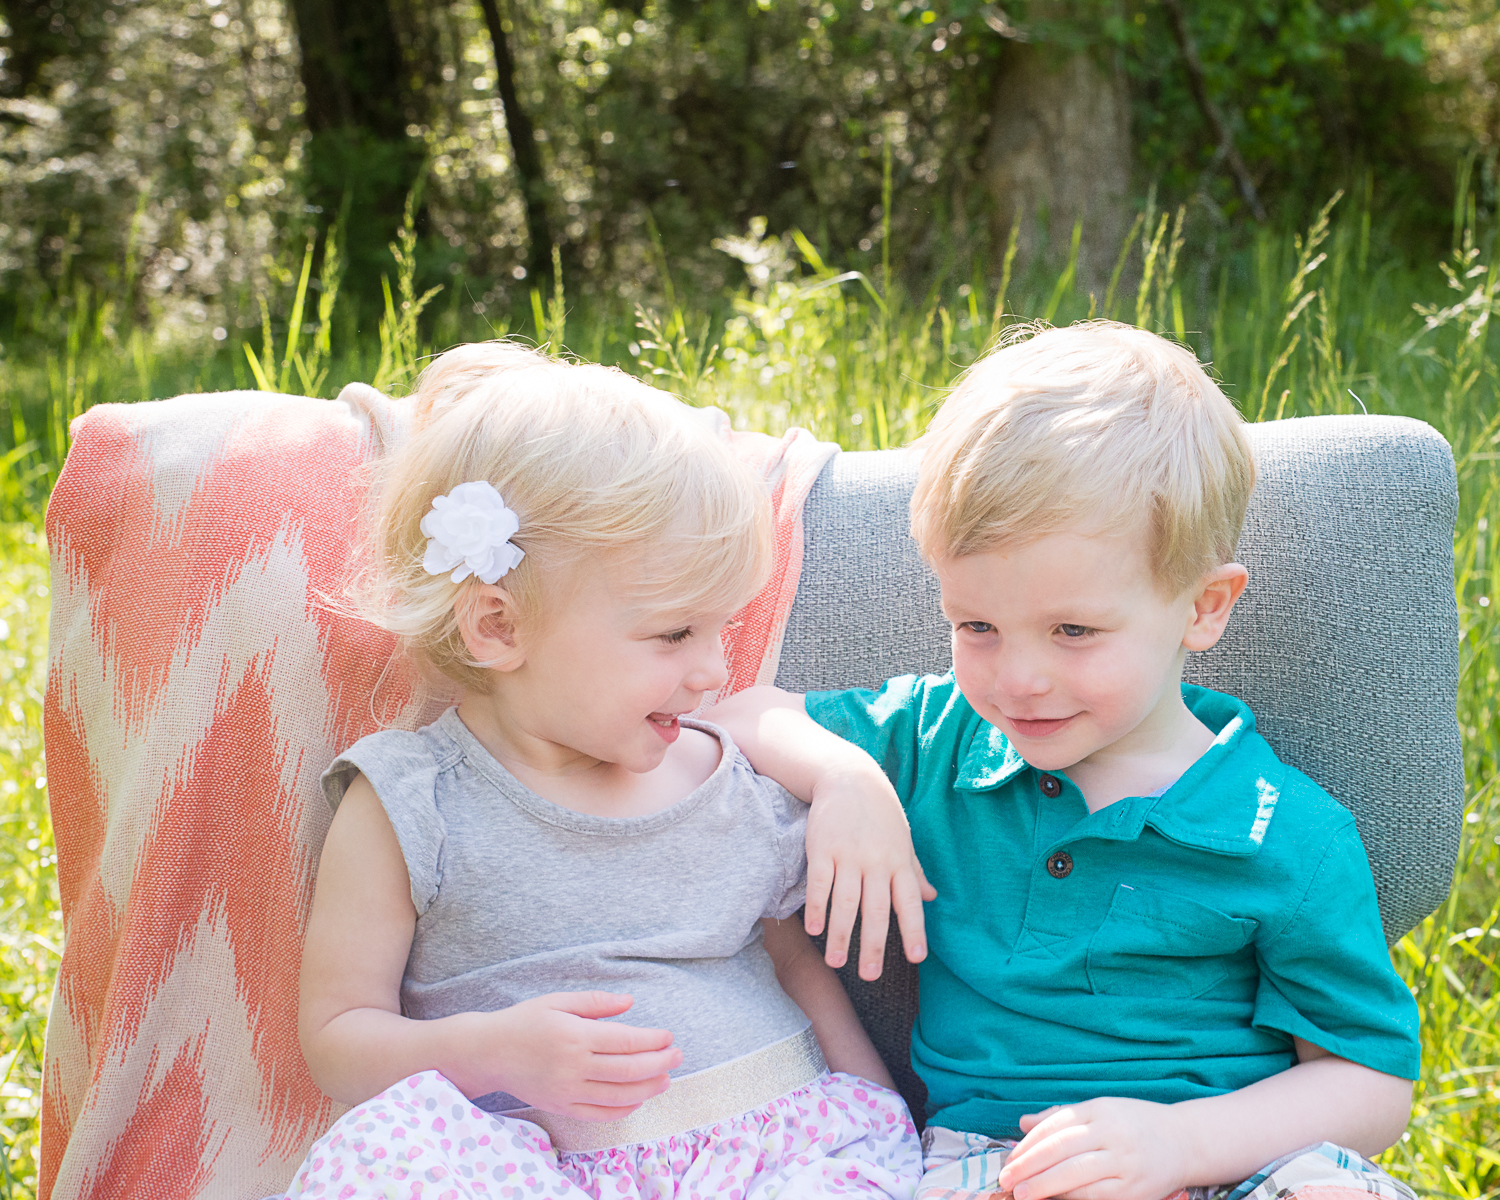 MothersSession37KelliPricePhotographyMay2015.jpg